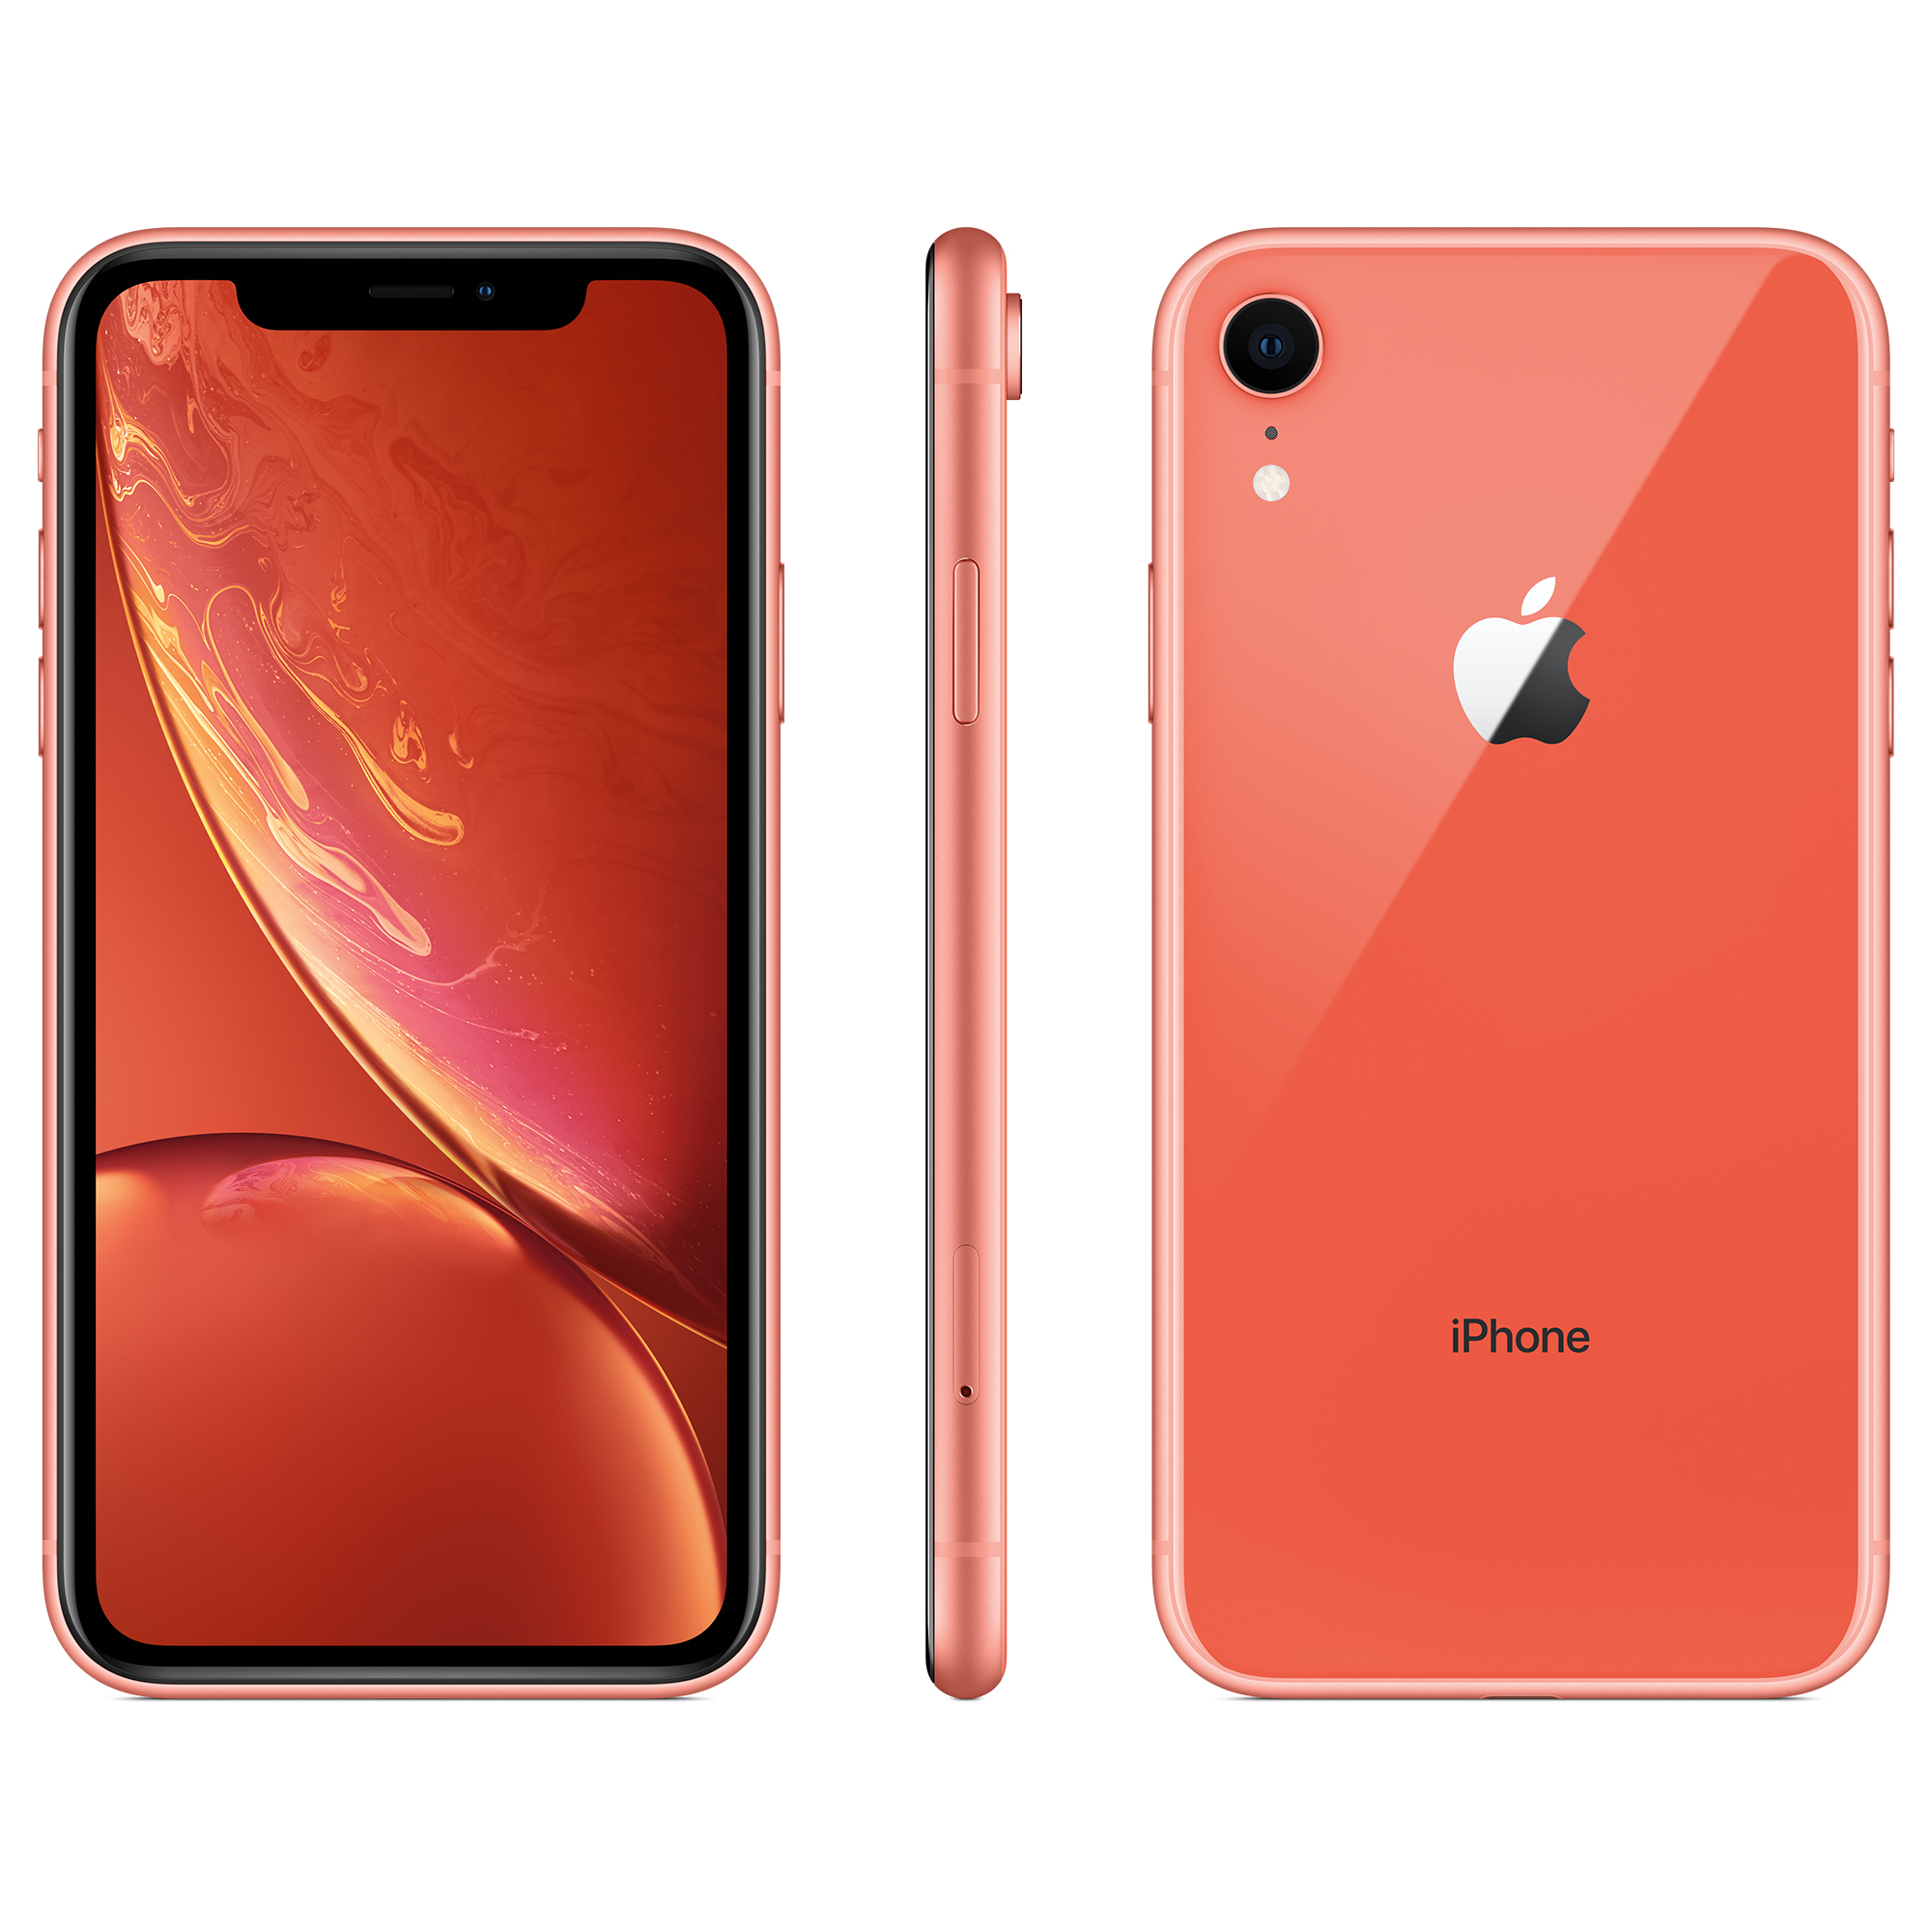 Walmart Family Mobile Apple iPhone XR w/64GB, Coral